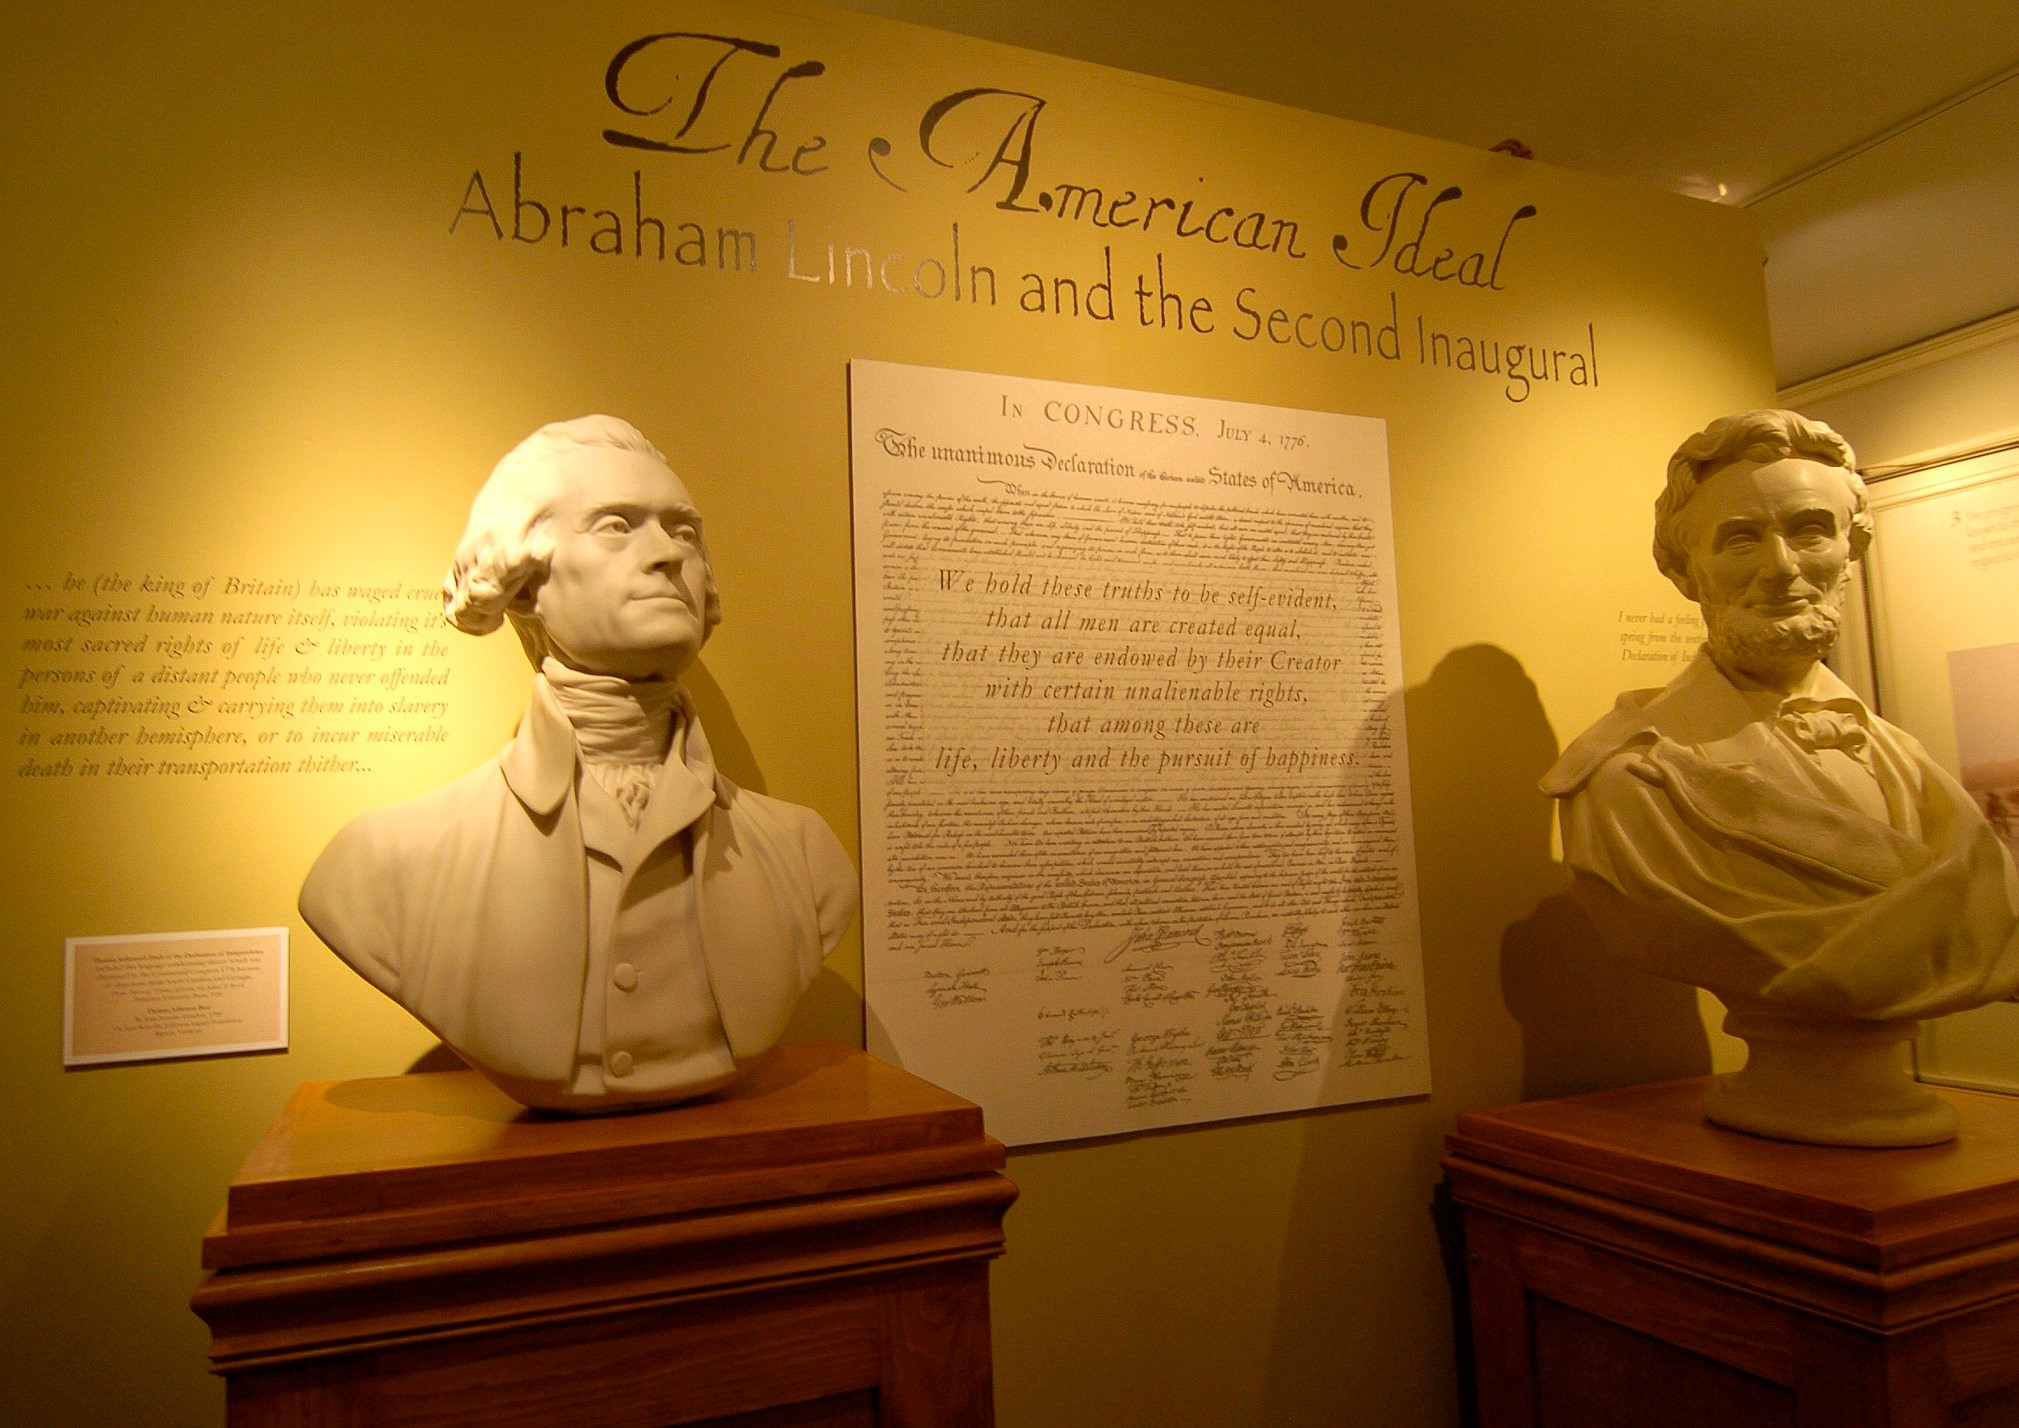 The American Ideal: Abraham Lincoln and the Second Inaugural